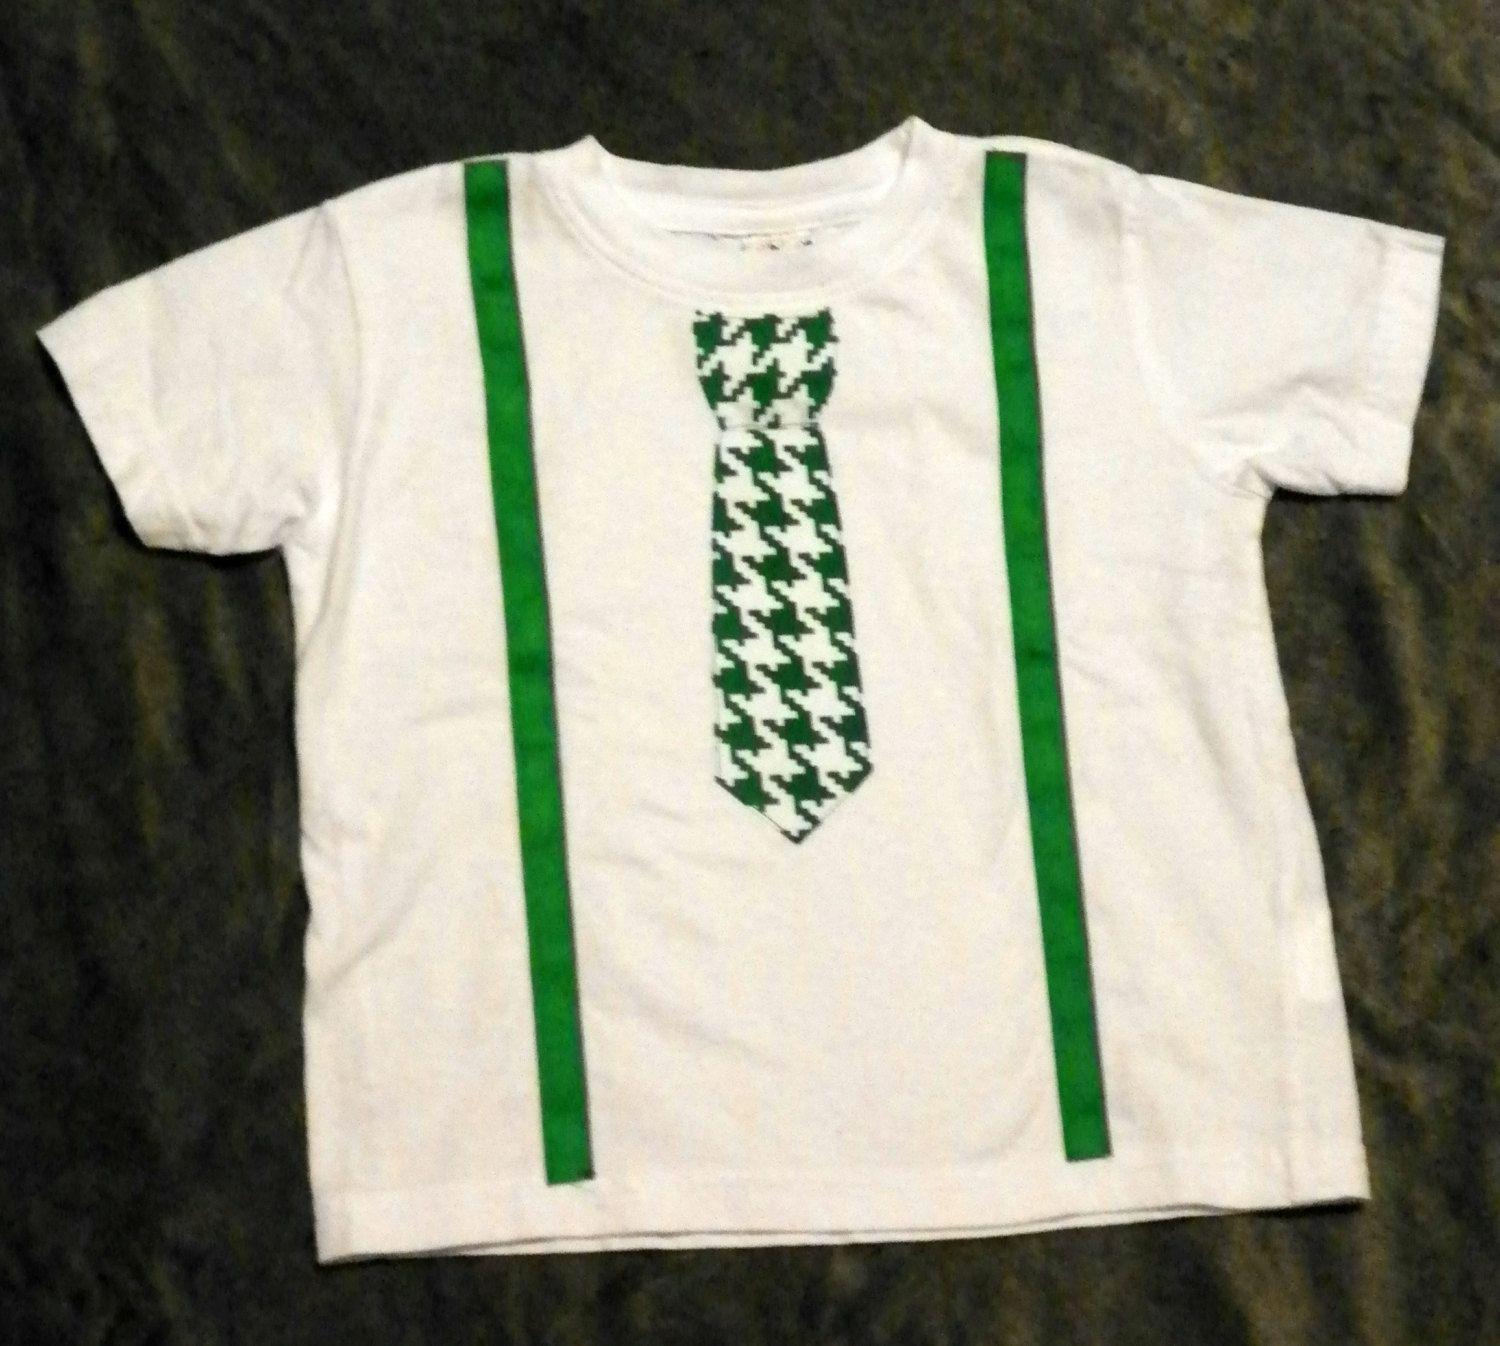 Short sleeve white t-shirt or onesie with green and white tie or bow tie and green ribbon suspenders appliqued. boutique, unique, custom by WinklesWhimsies on Etsy